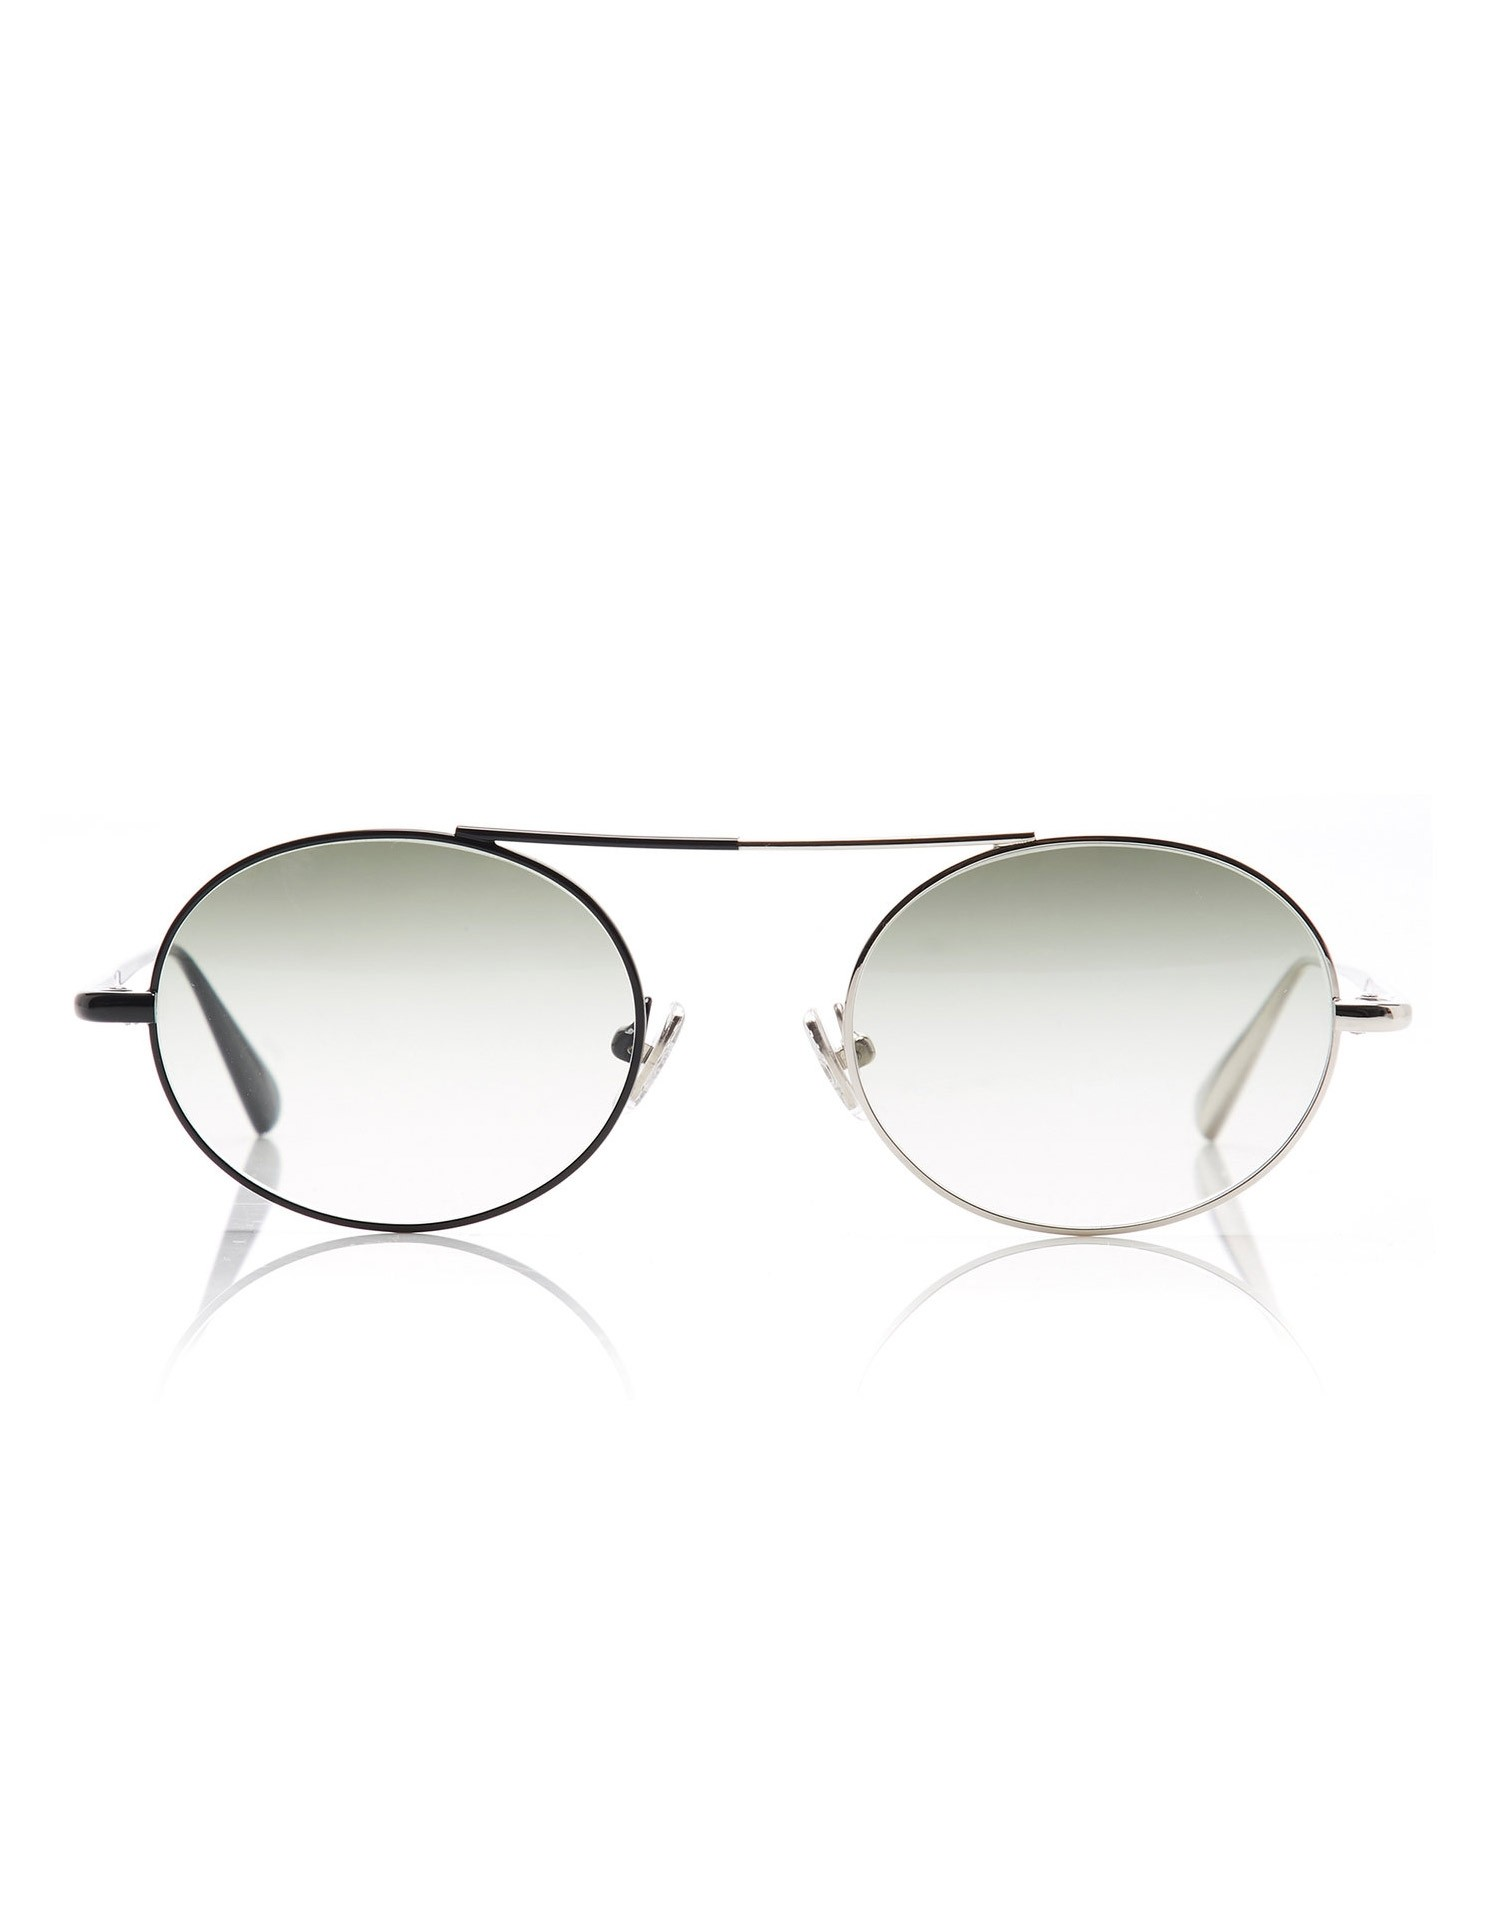 Monse Nina Sunglasses with Dual Colored Rims in Black and Silver